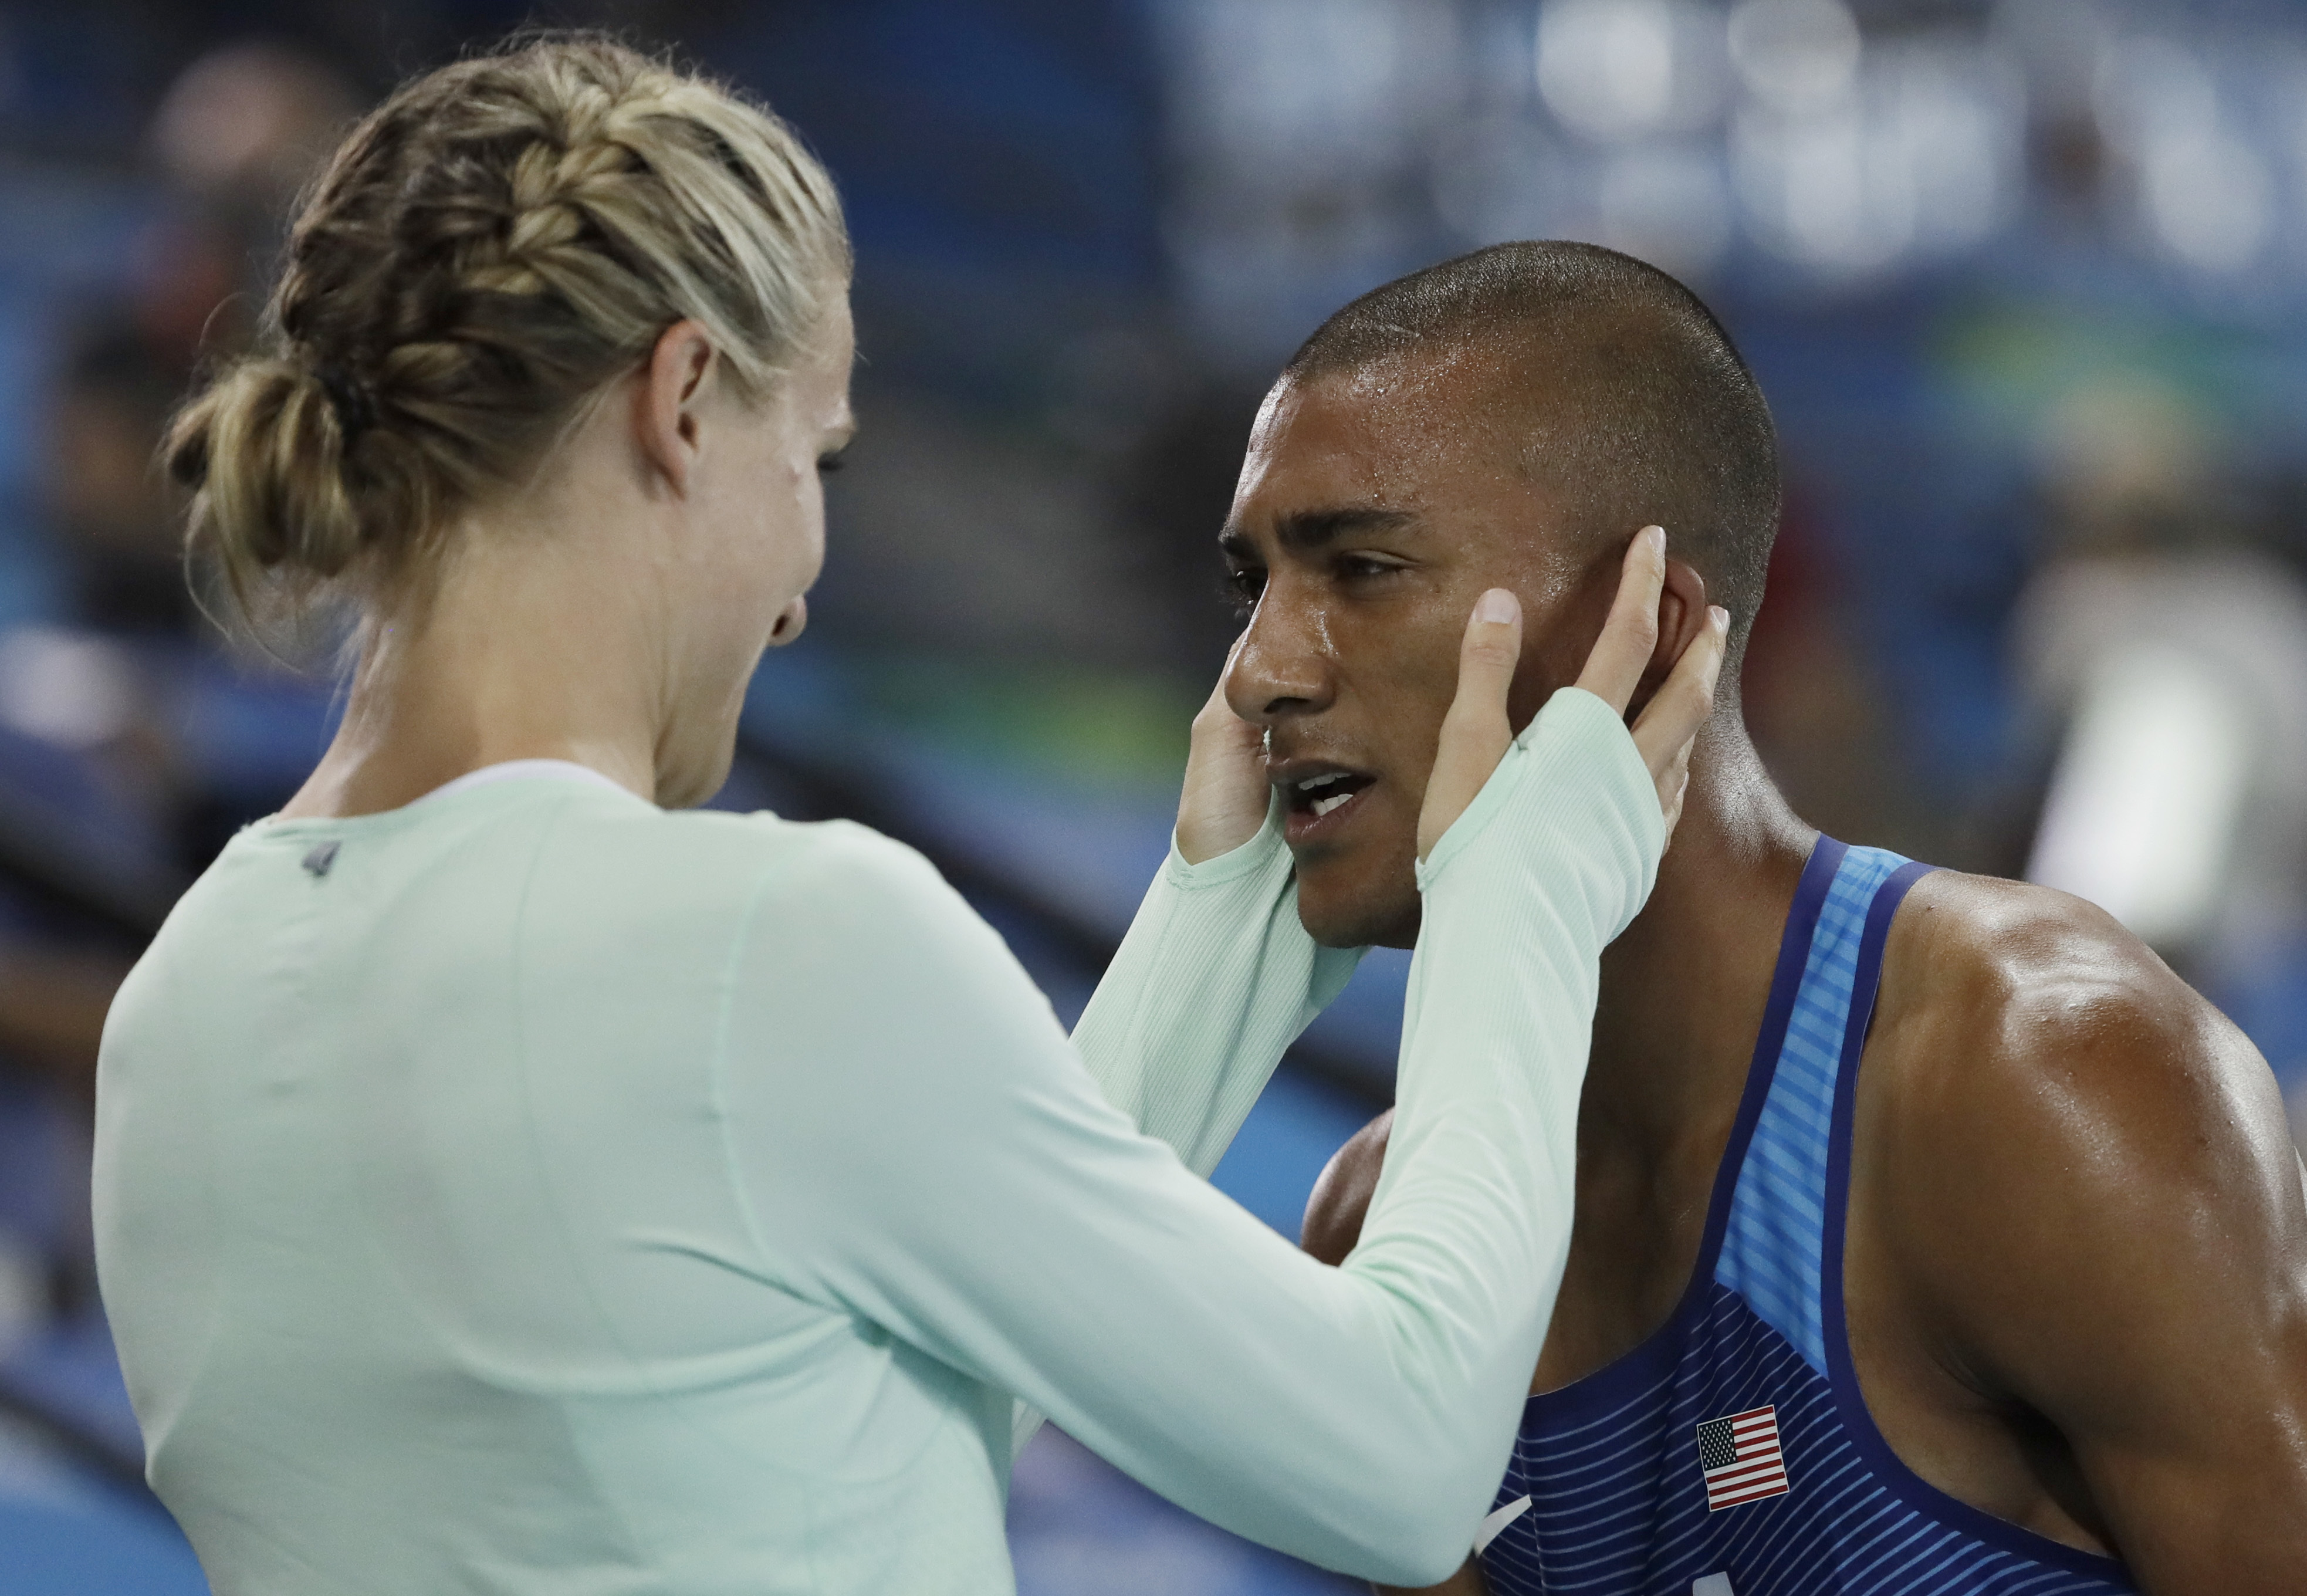 United States' Ashton Eaton embraces his wife Canada's Brianne Theisen Eaton after winning the gold medal in men's decathlon during the athletics competitions of the 2016 Summer Olympics at the Olympic stadium in Rio de Janeiro, Brazil, Thursday, Aug. 18,